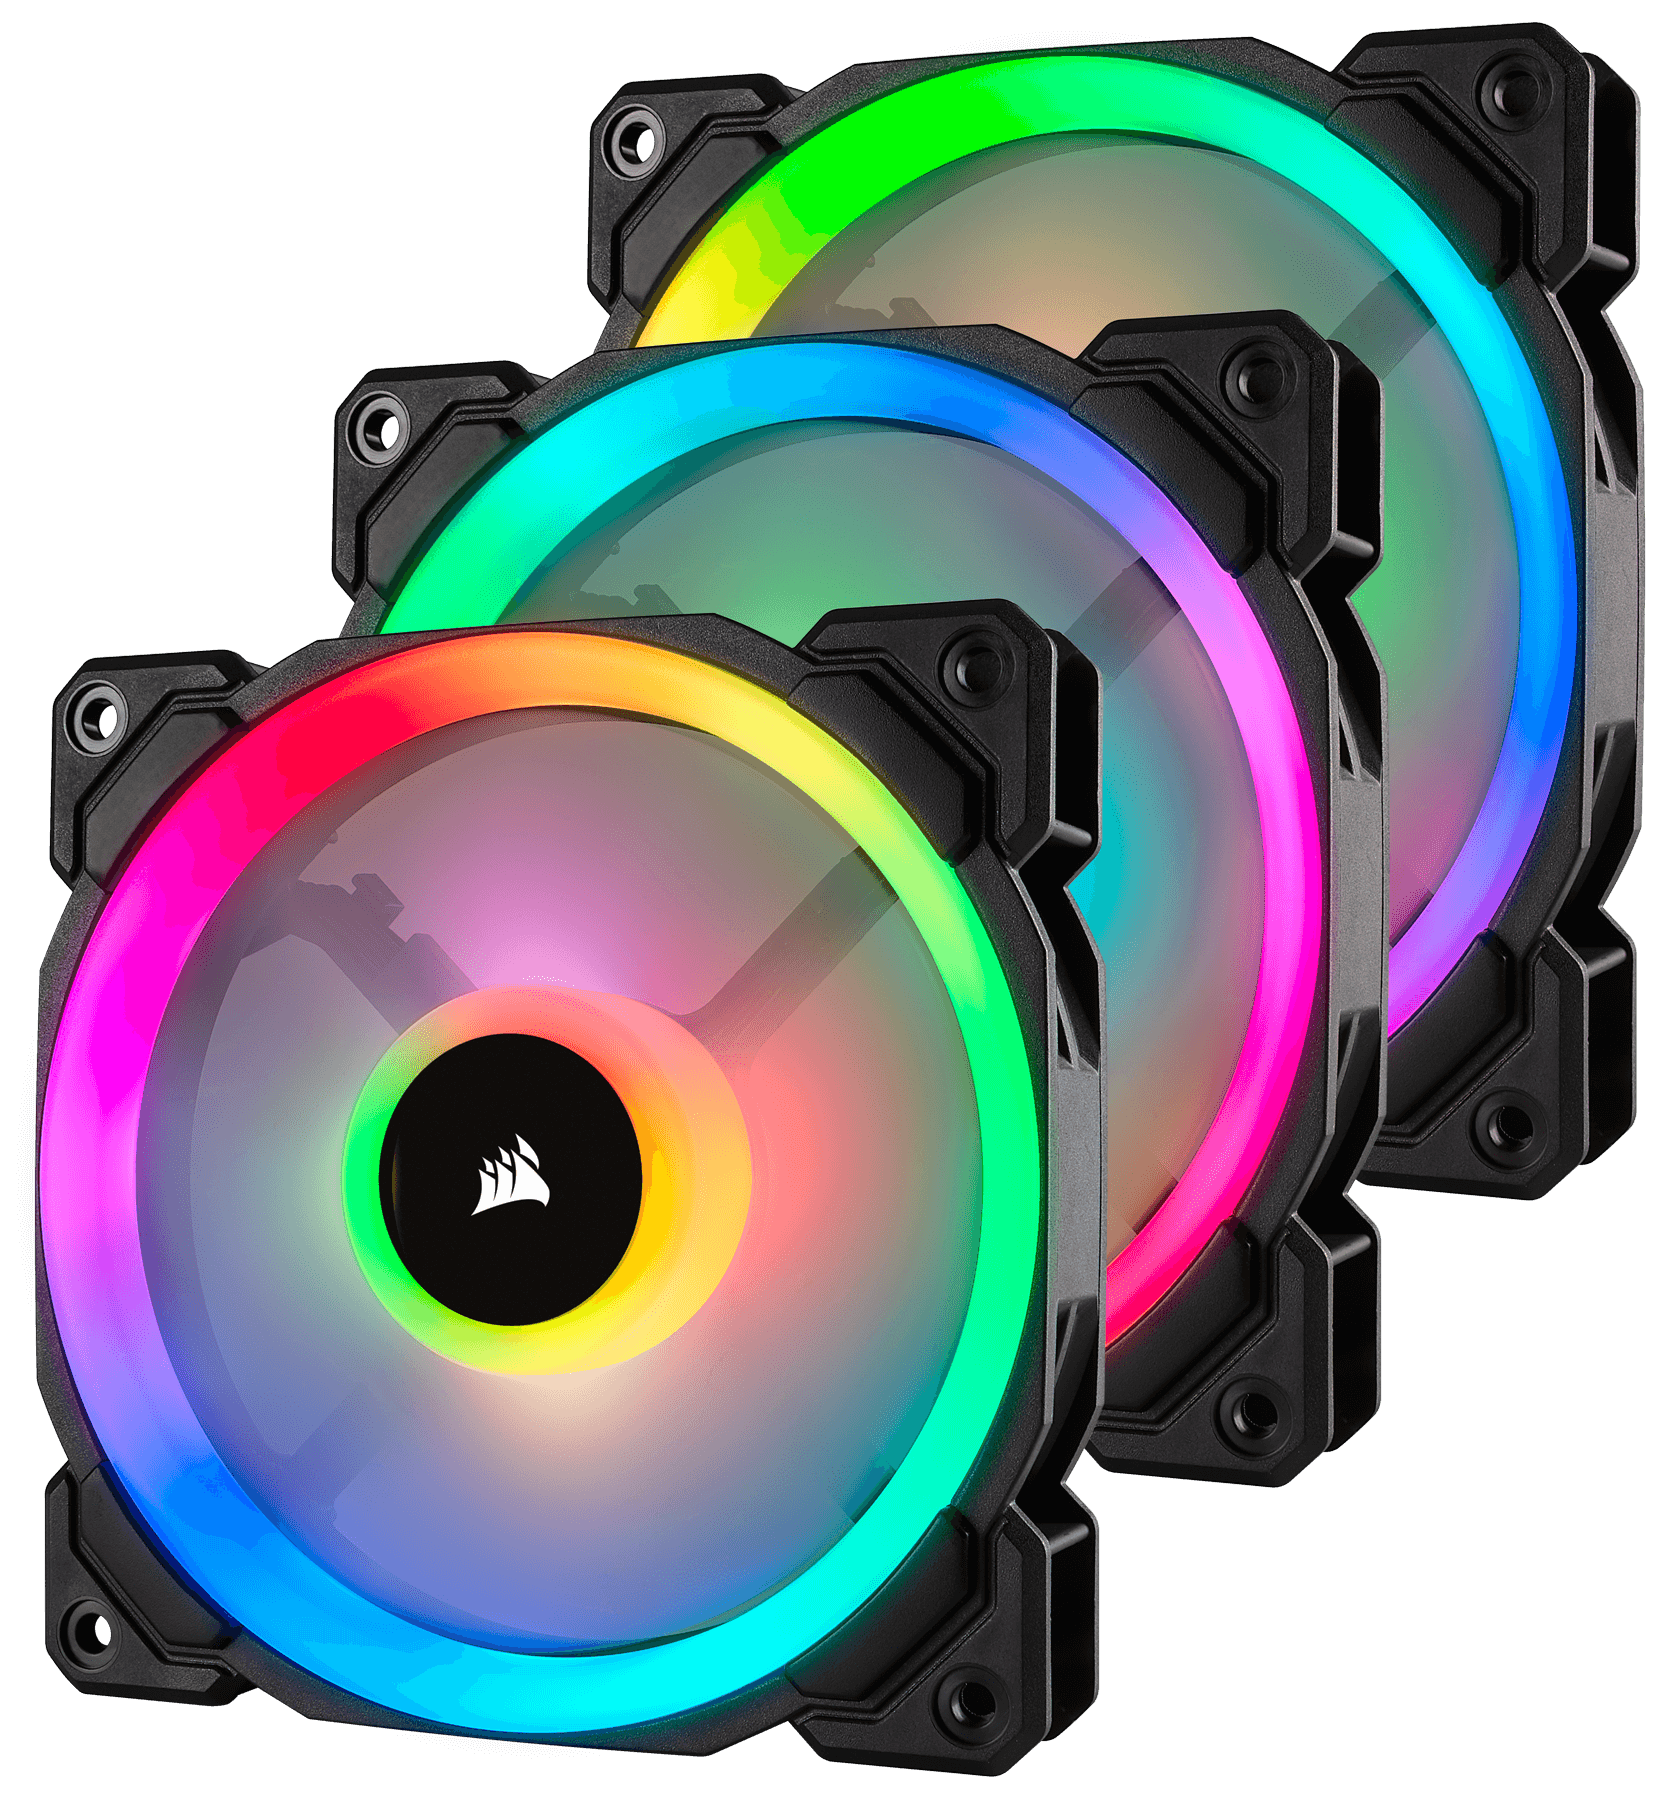 Fan Corsair LL120 RGB 120mm Dual Light Loop RGB LED PWM Fan (Gồm 3 Fan với Lighting Node PRO) (CO-9050072-WW) 4